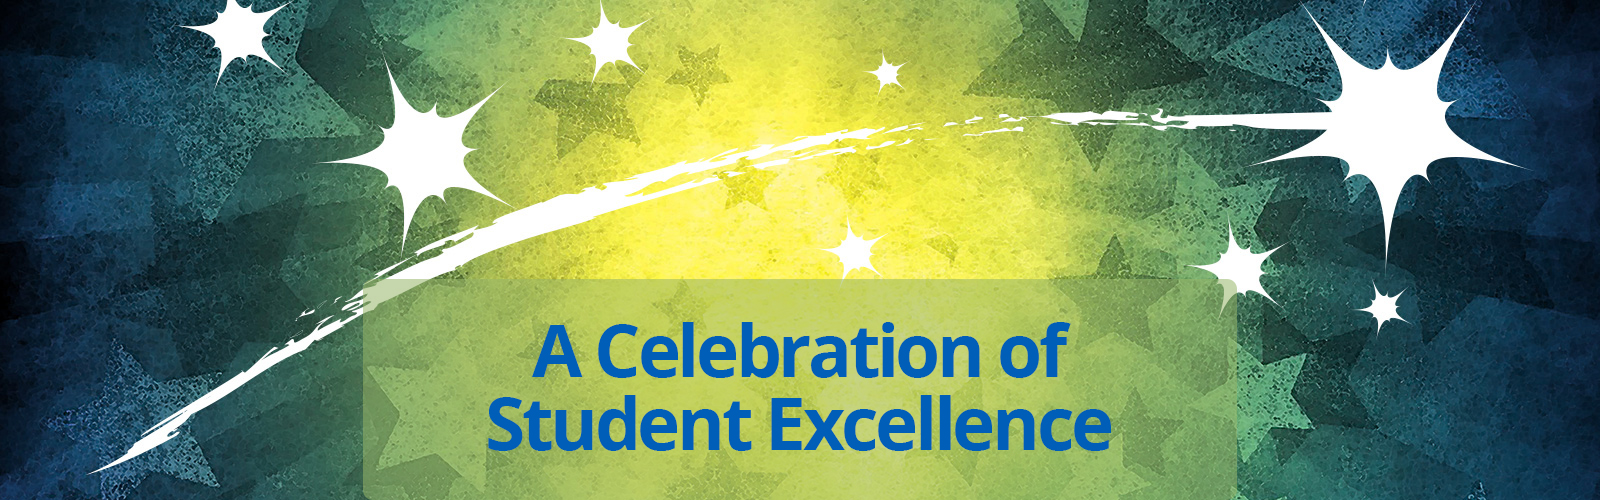 A textured background with a star burst with the words Celebration of Student Excellence